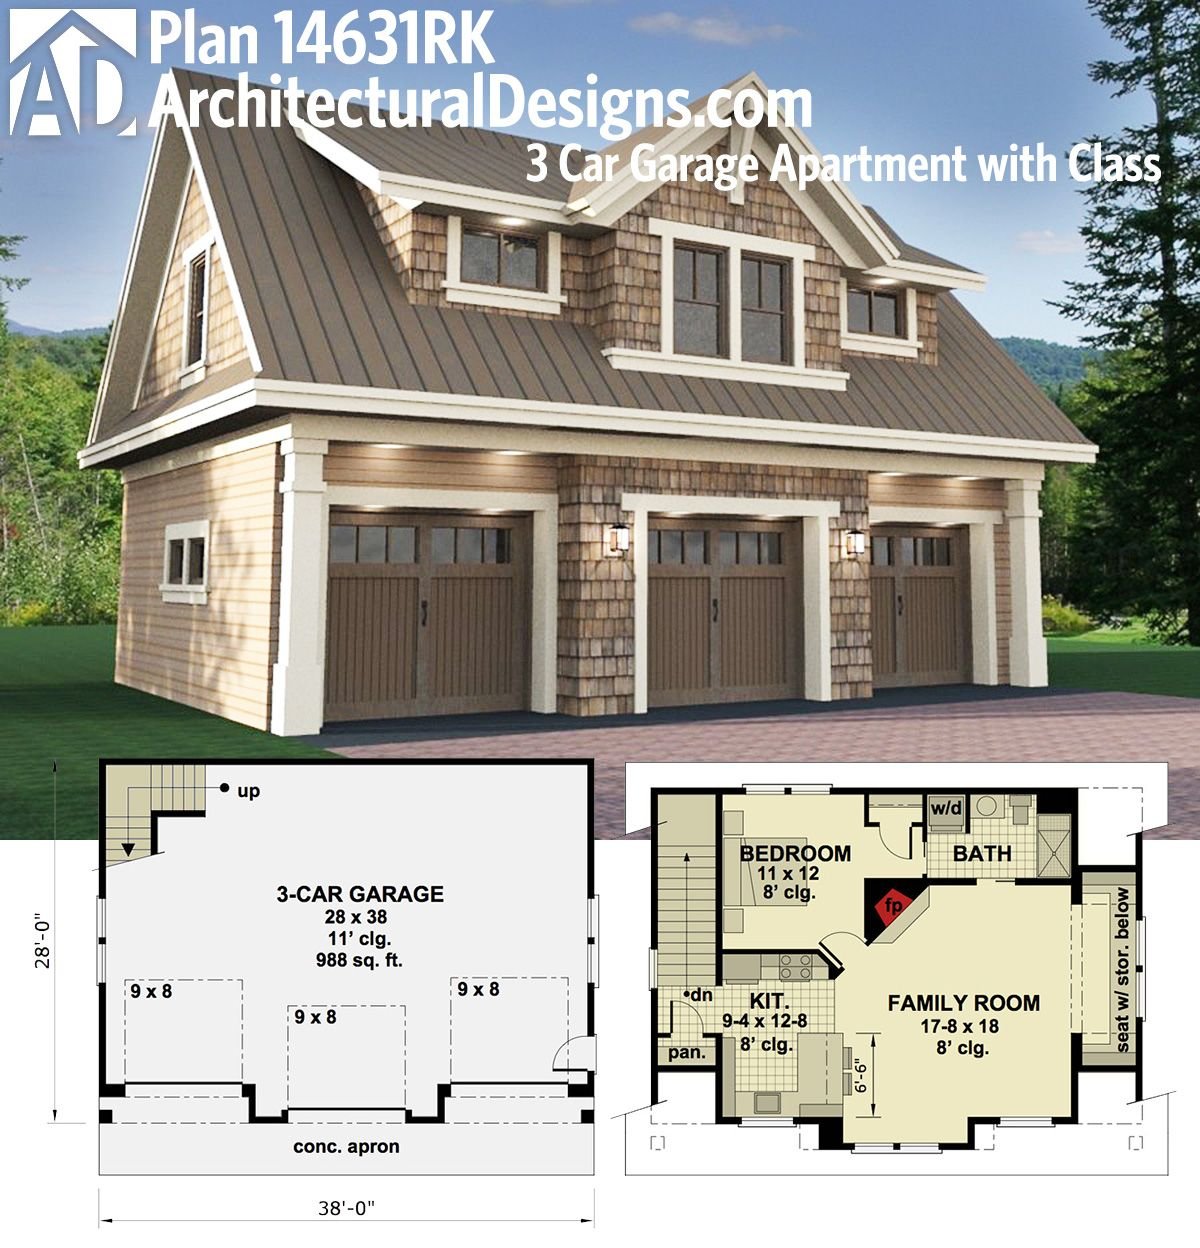 Plan 14631rk 3 car garage apartment with class carriage for 6 car garage house plans